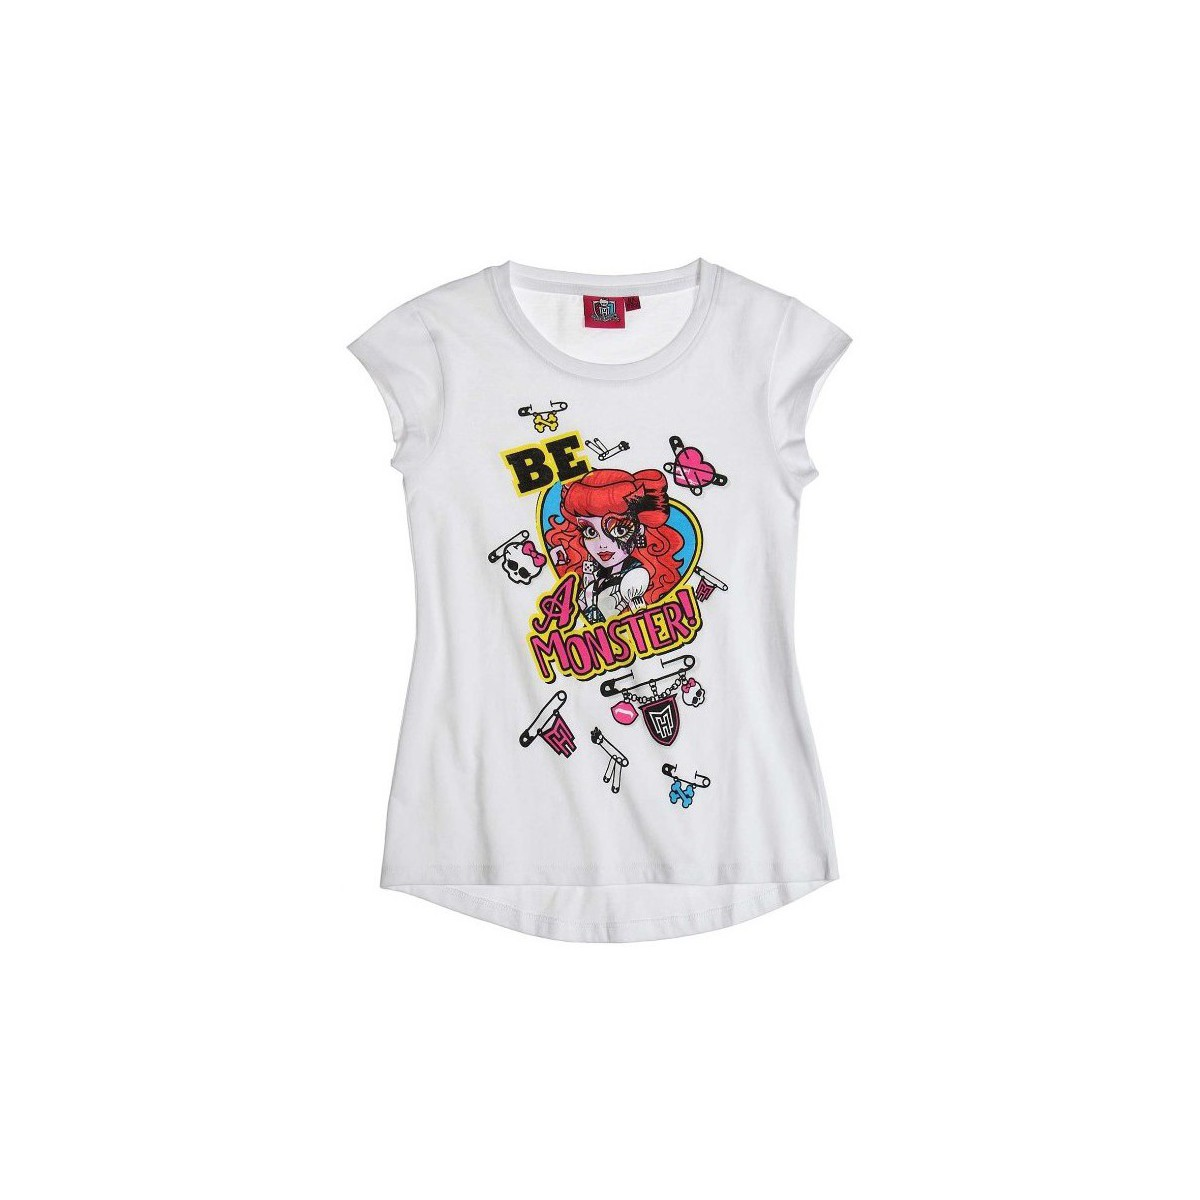 Mattel T-shirt à manches courtes Monster High blanc